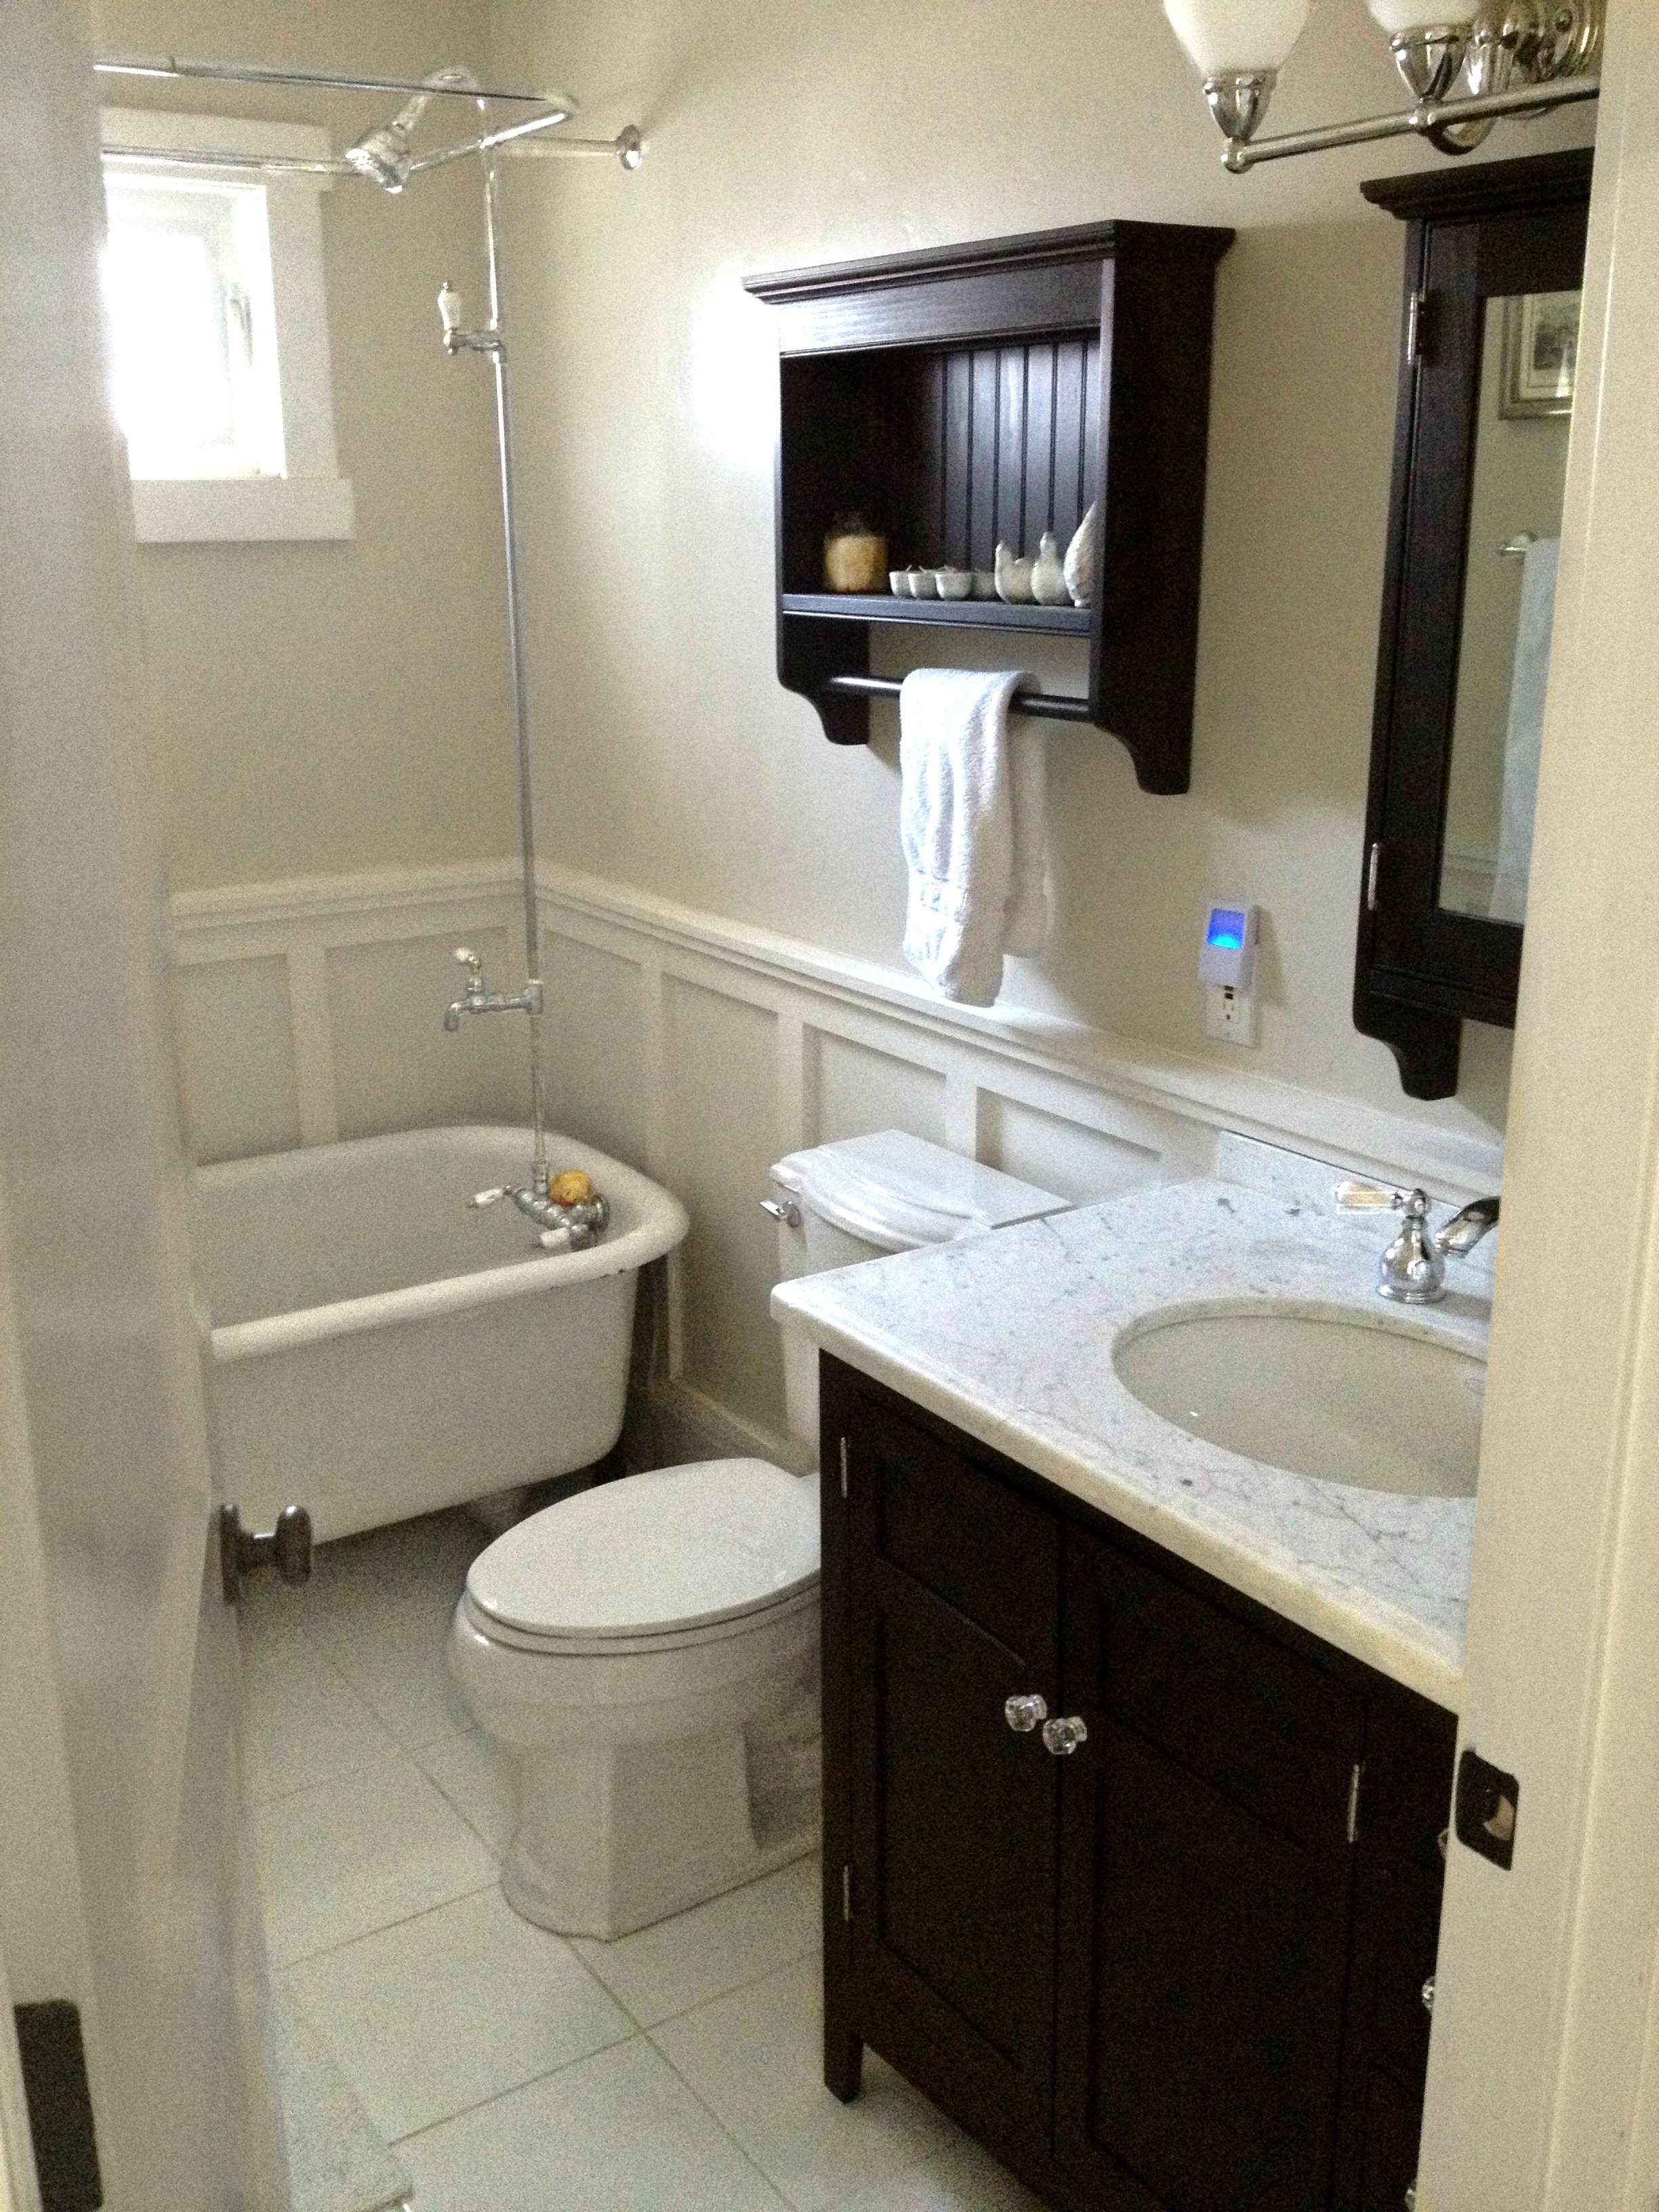 Bathroom Remodel  San Jose, CA Old World Charm Is Still Alive U0026 Lovely As  Ever. Beautiful Contrast With Espresso Cabinets, Warm Neutrals And Classic  ...